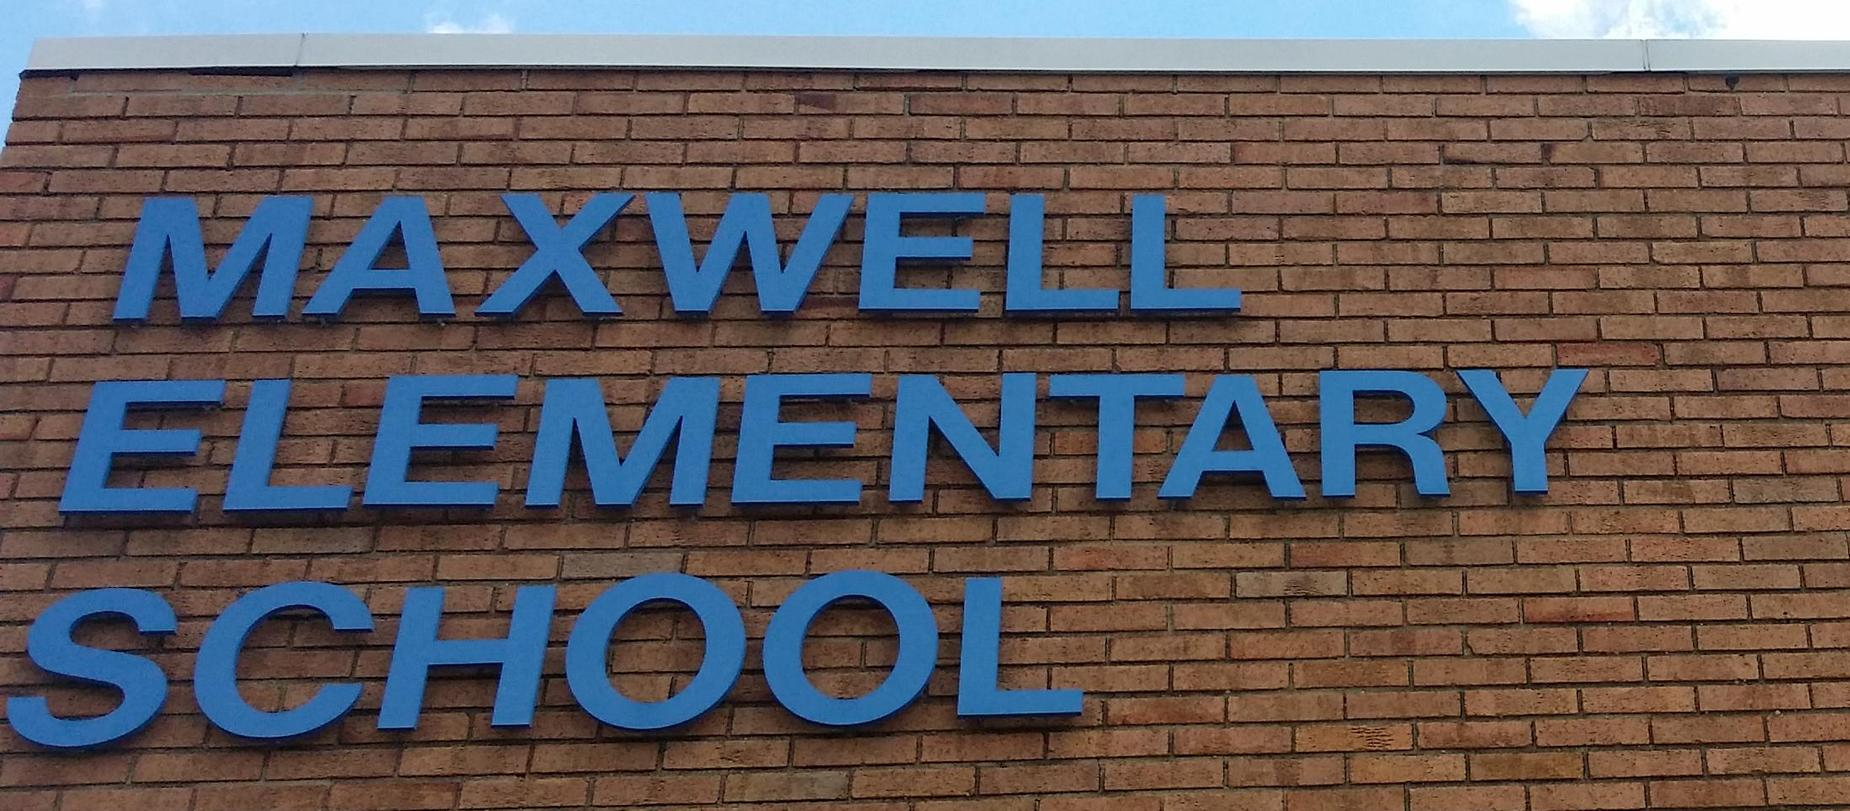 Maxwell the place to be!